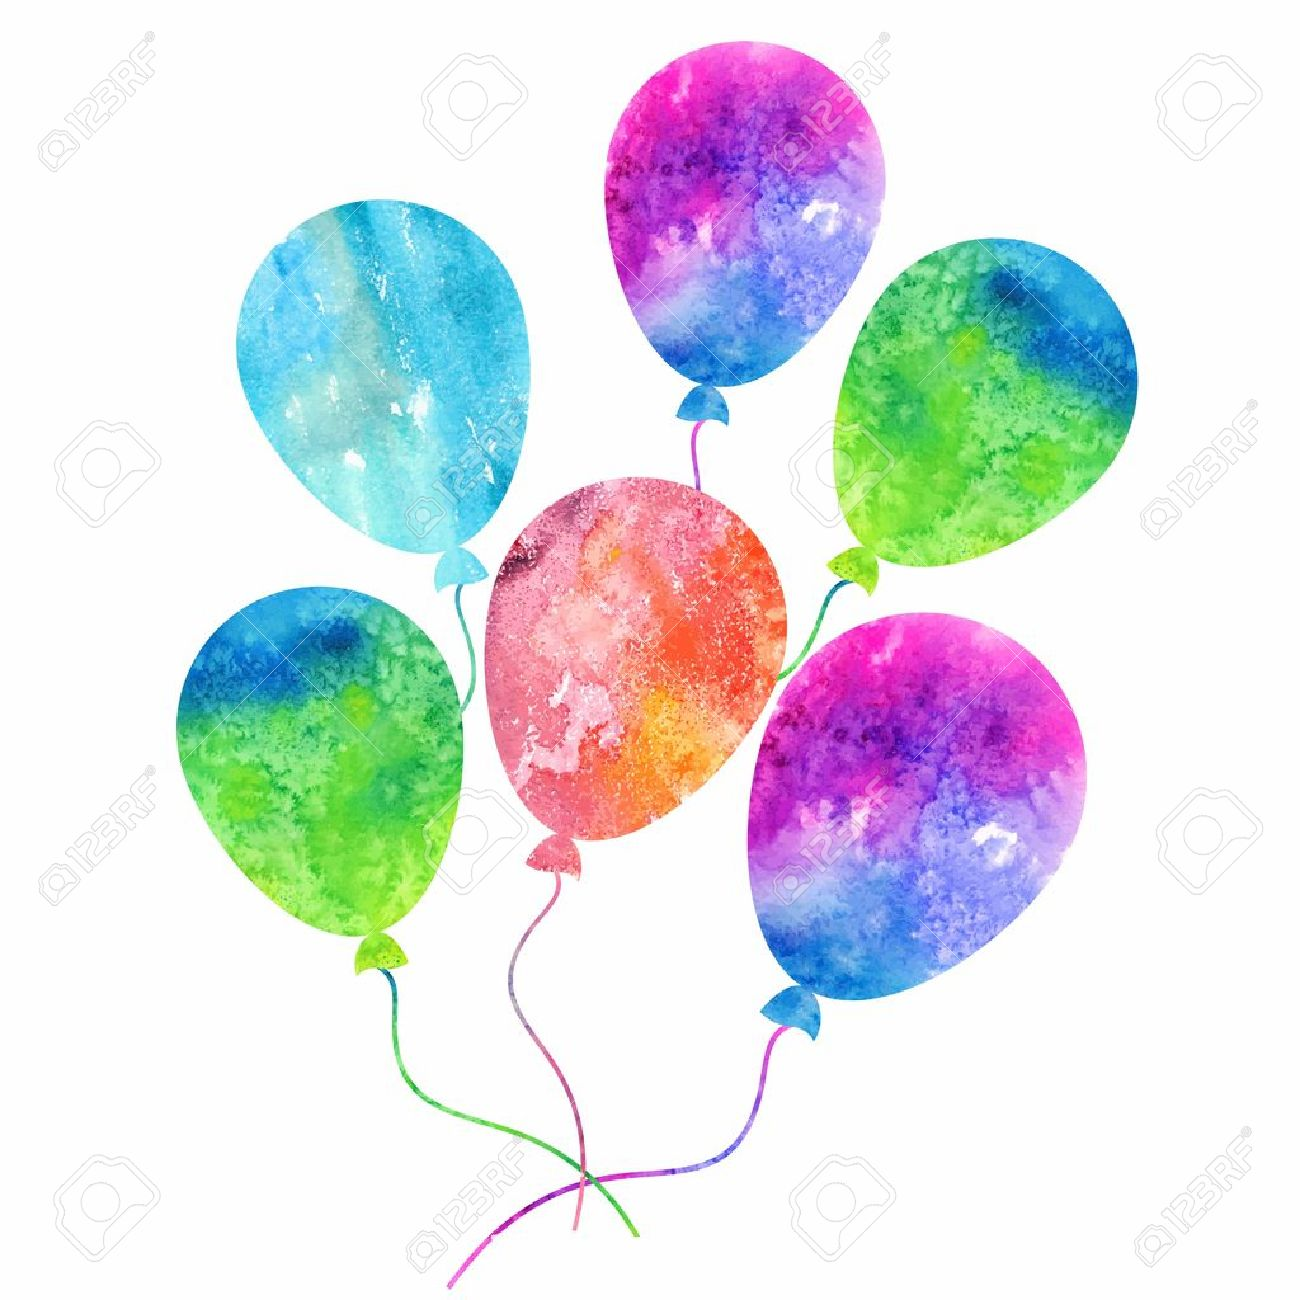 Colorful Inflatable Balloons Birthday Card Decoration Royalty Free